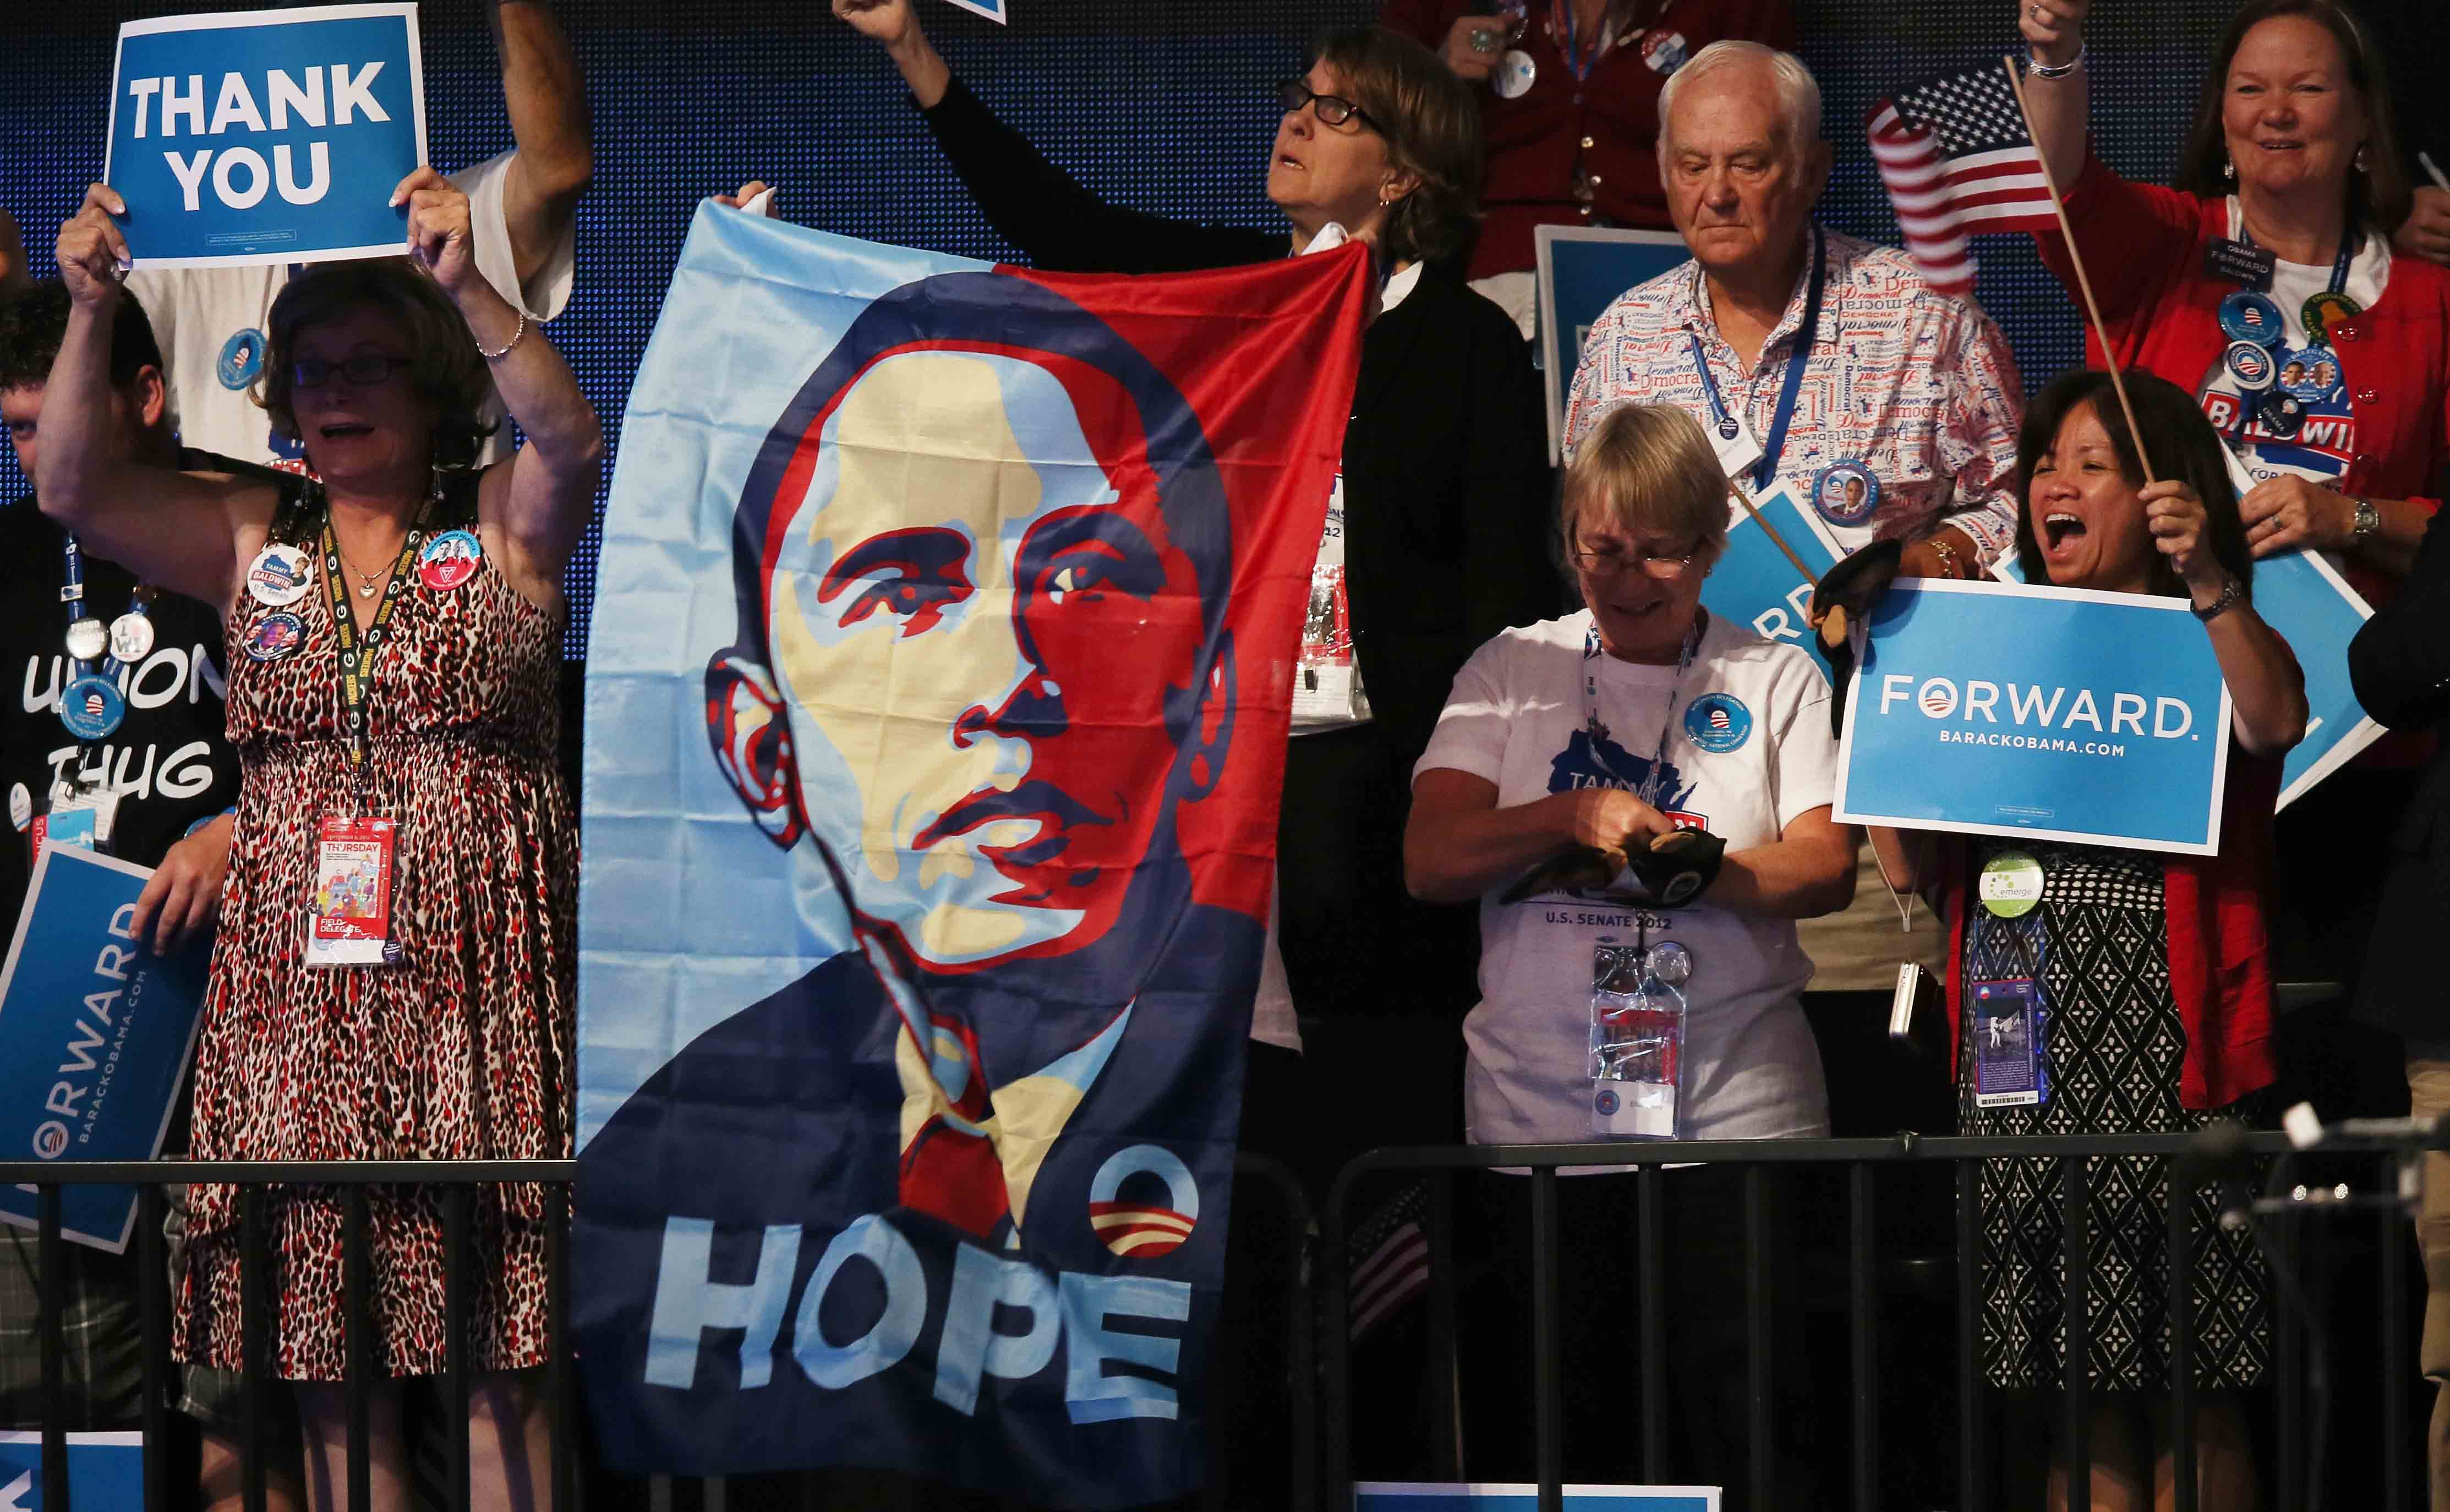 Supporters of President Obama holding a flag containing his image.